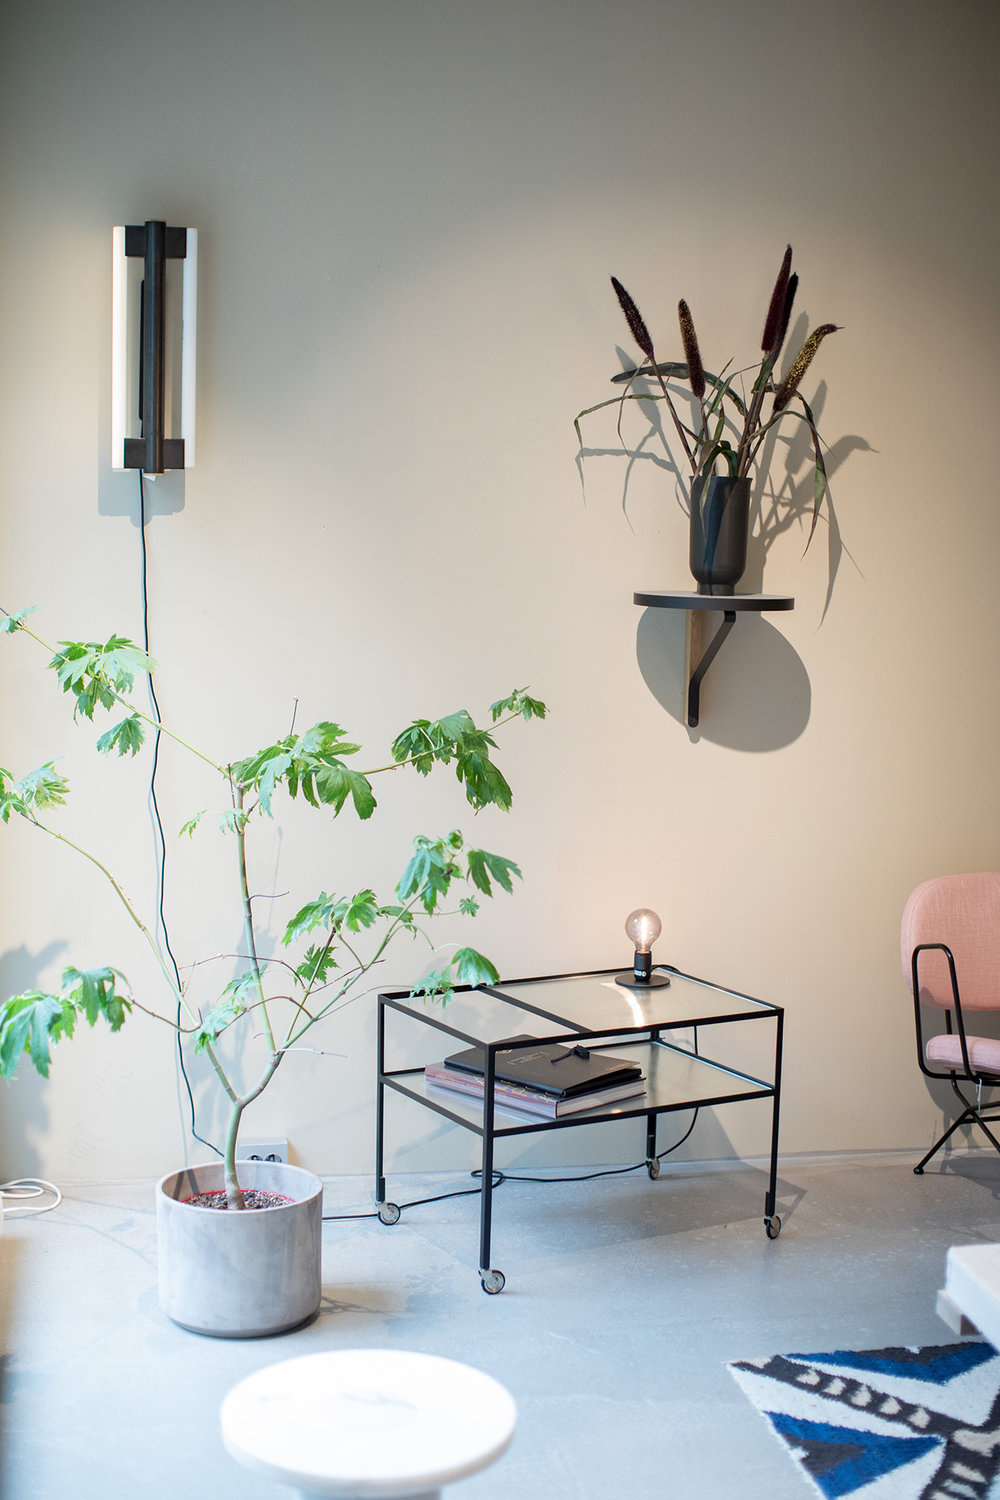 KollektedBy, design store in Oslo, Norway - Instagrammer's Guide to Oslo - 91 Magazine